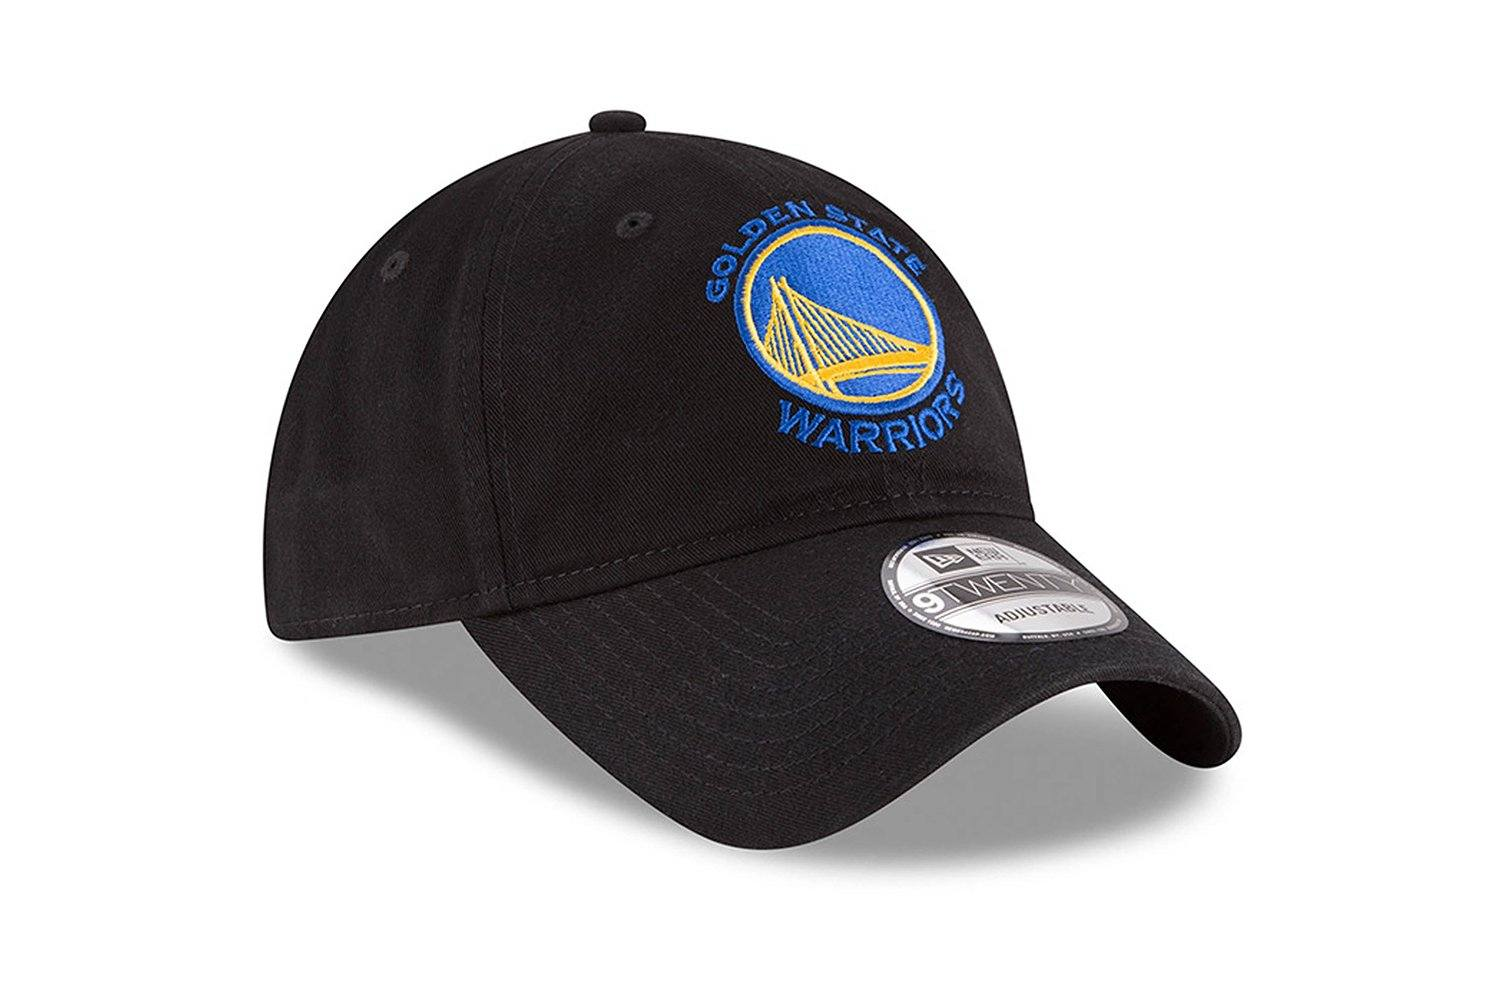 677675ab CORE CLASSIC TW GOLDEN STATE WARRIORS HAT HATS NEW ERA